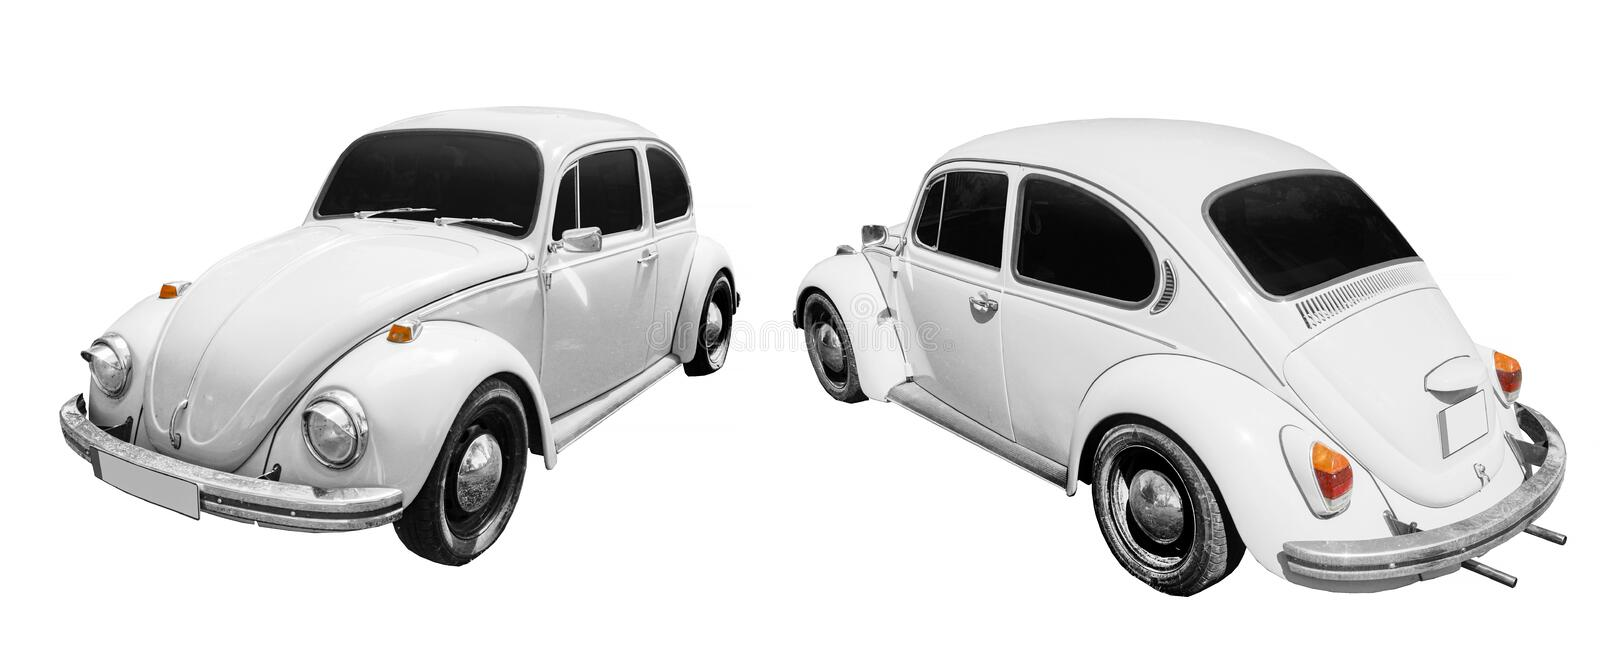 Classic retro car isolated on white background royalty free stock photography